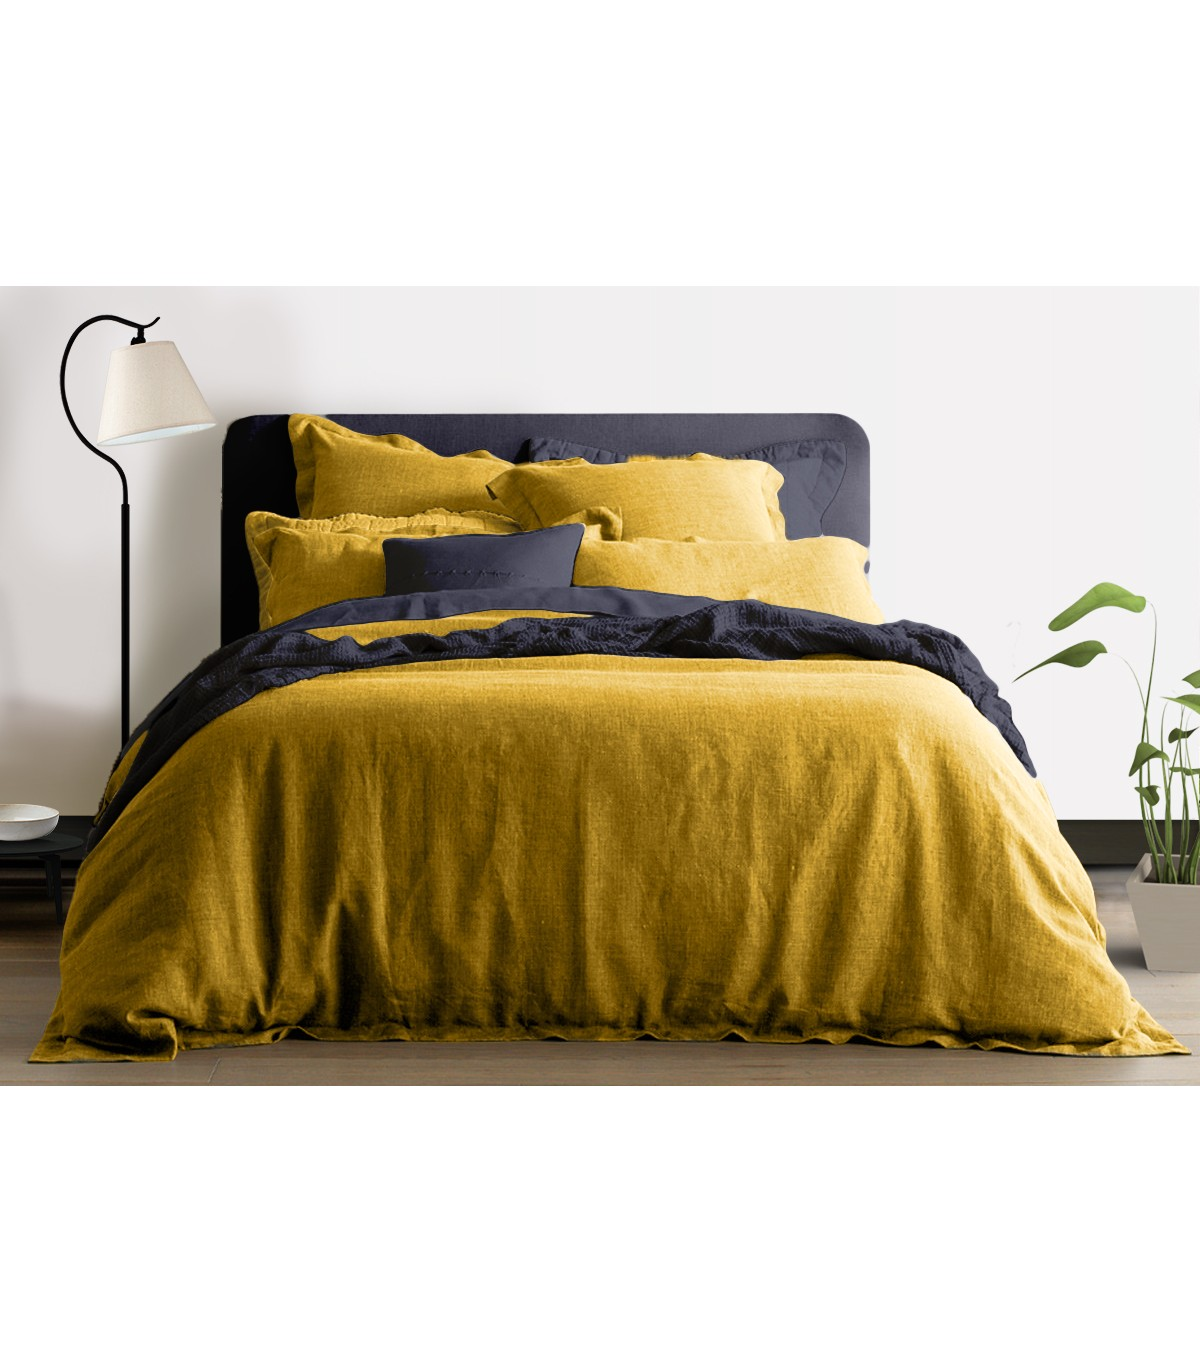 housse de couette 100 lin jaune moutarde my little bed. Black Bedroom Furniture Sets. Home Design Ideas